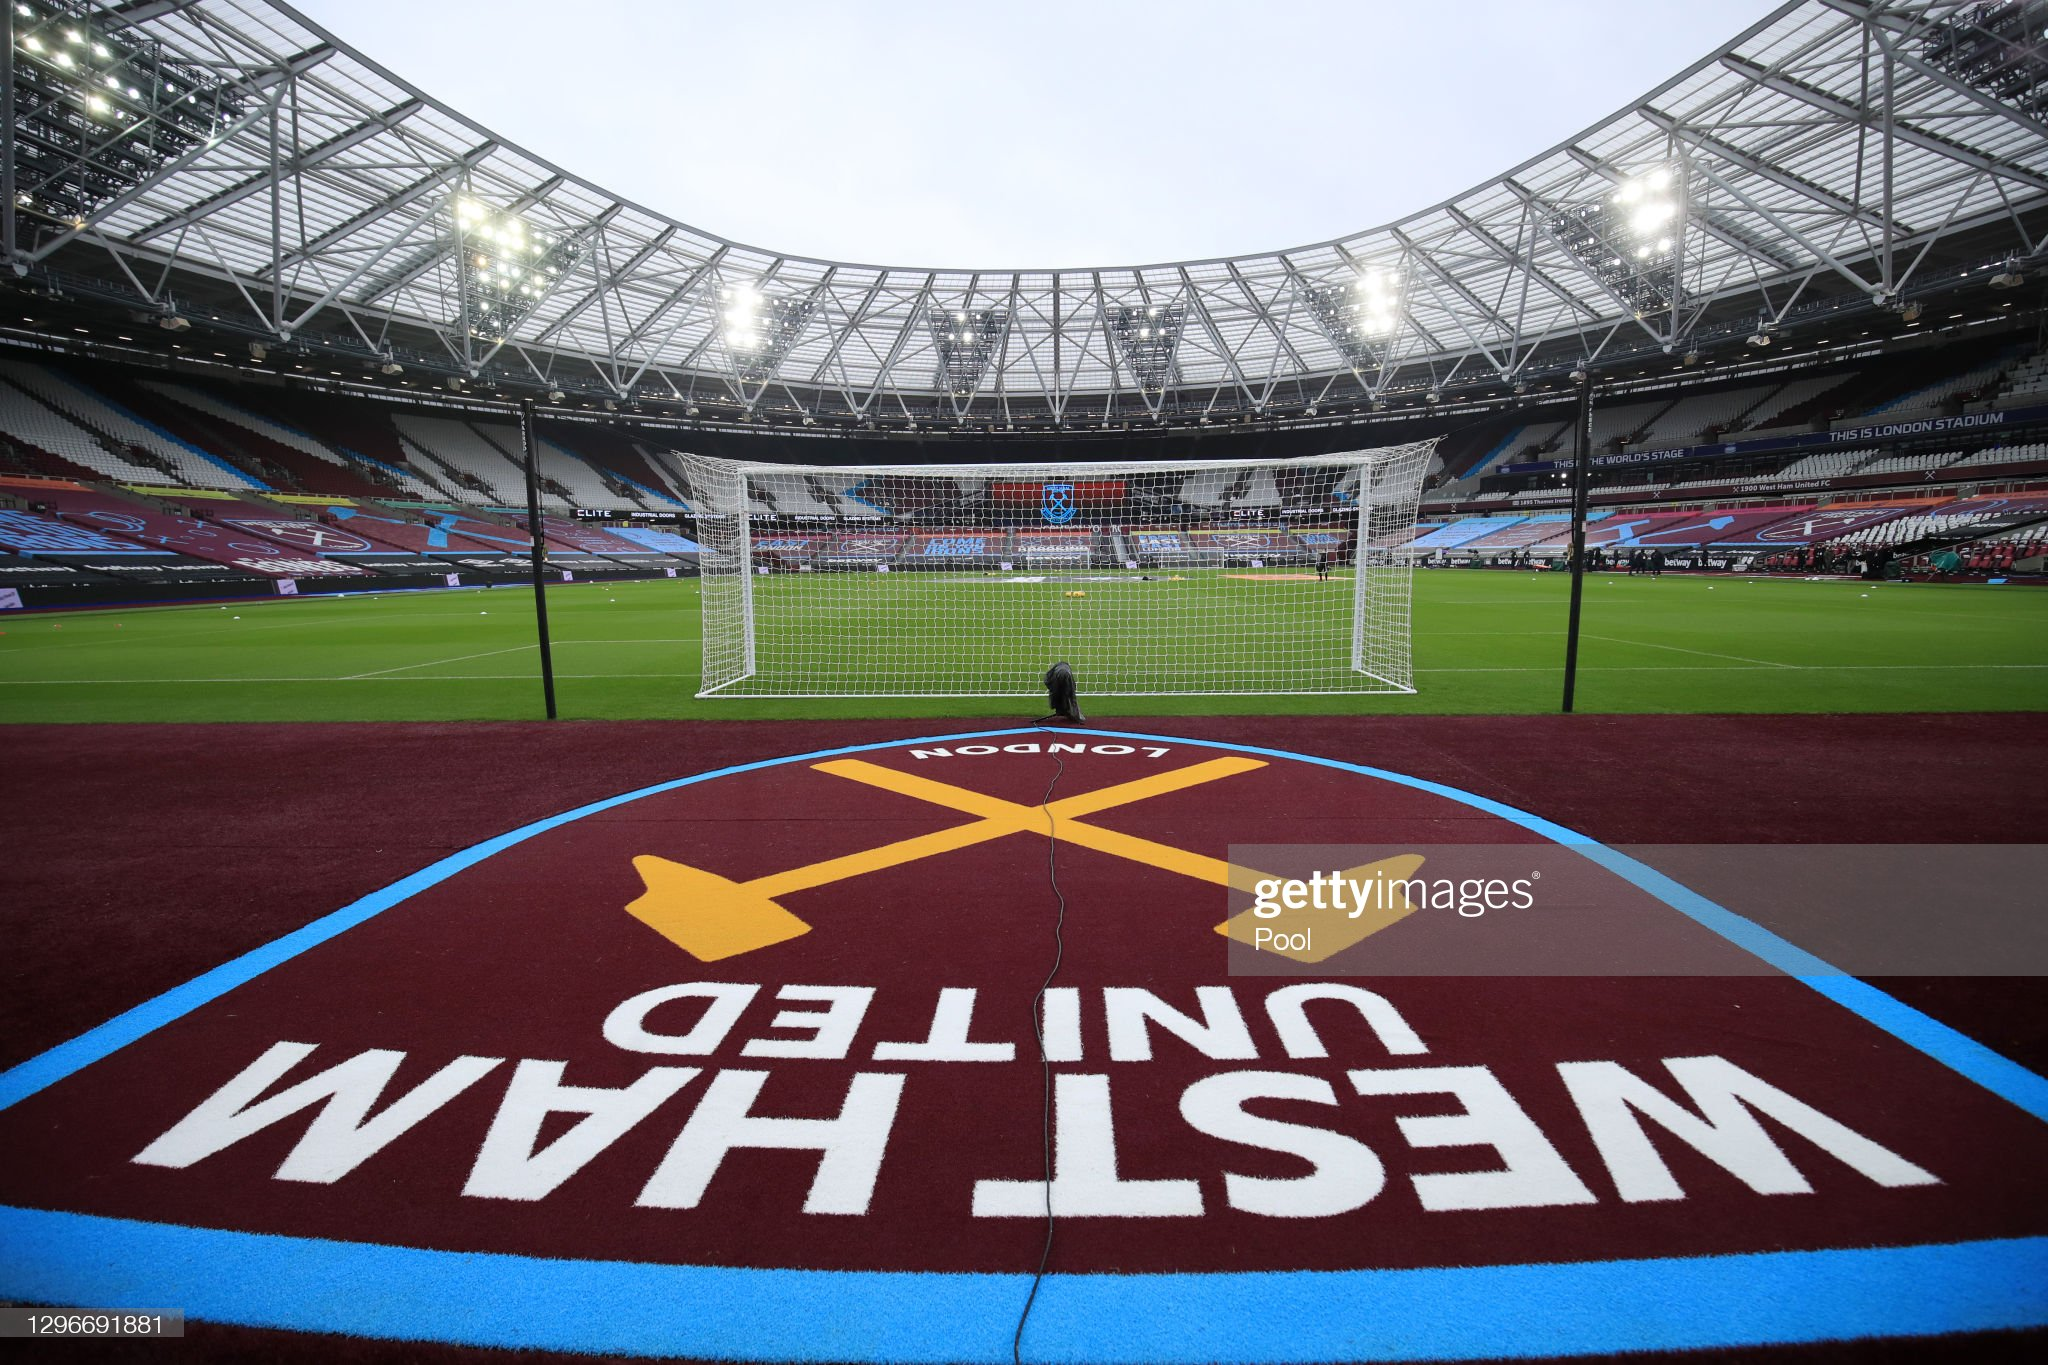 West Ham vs West Brom Preview, prediction and odds